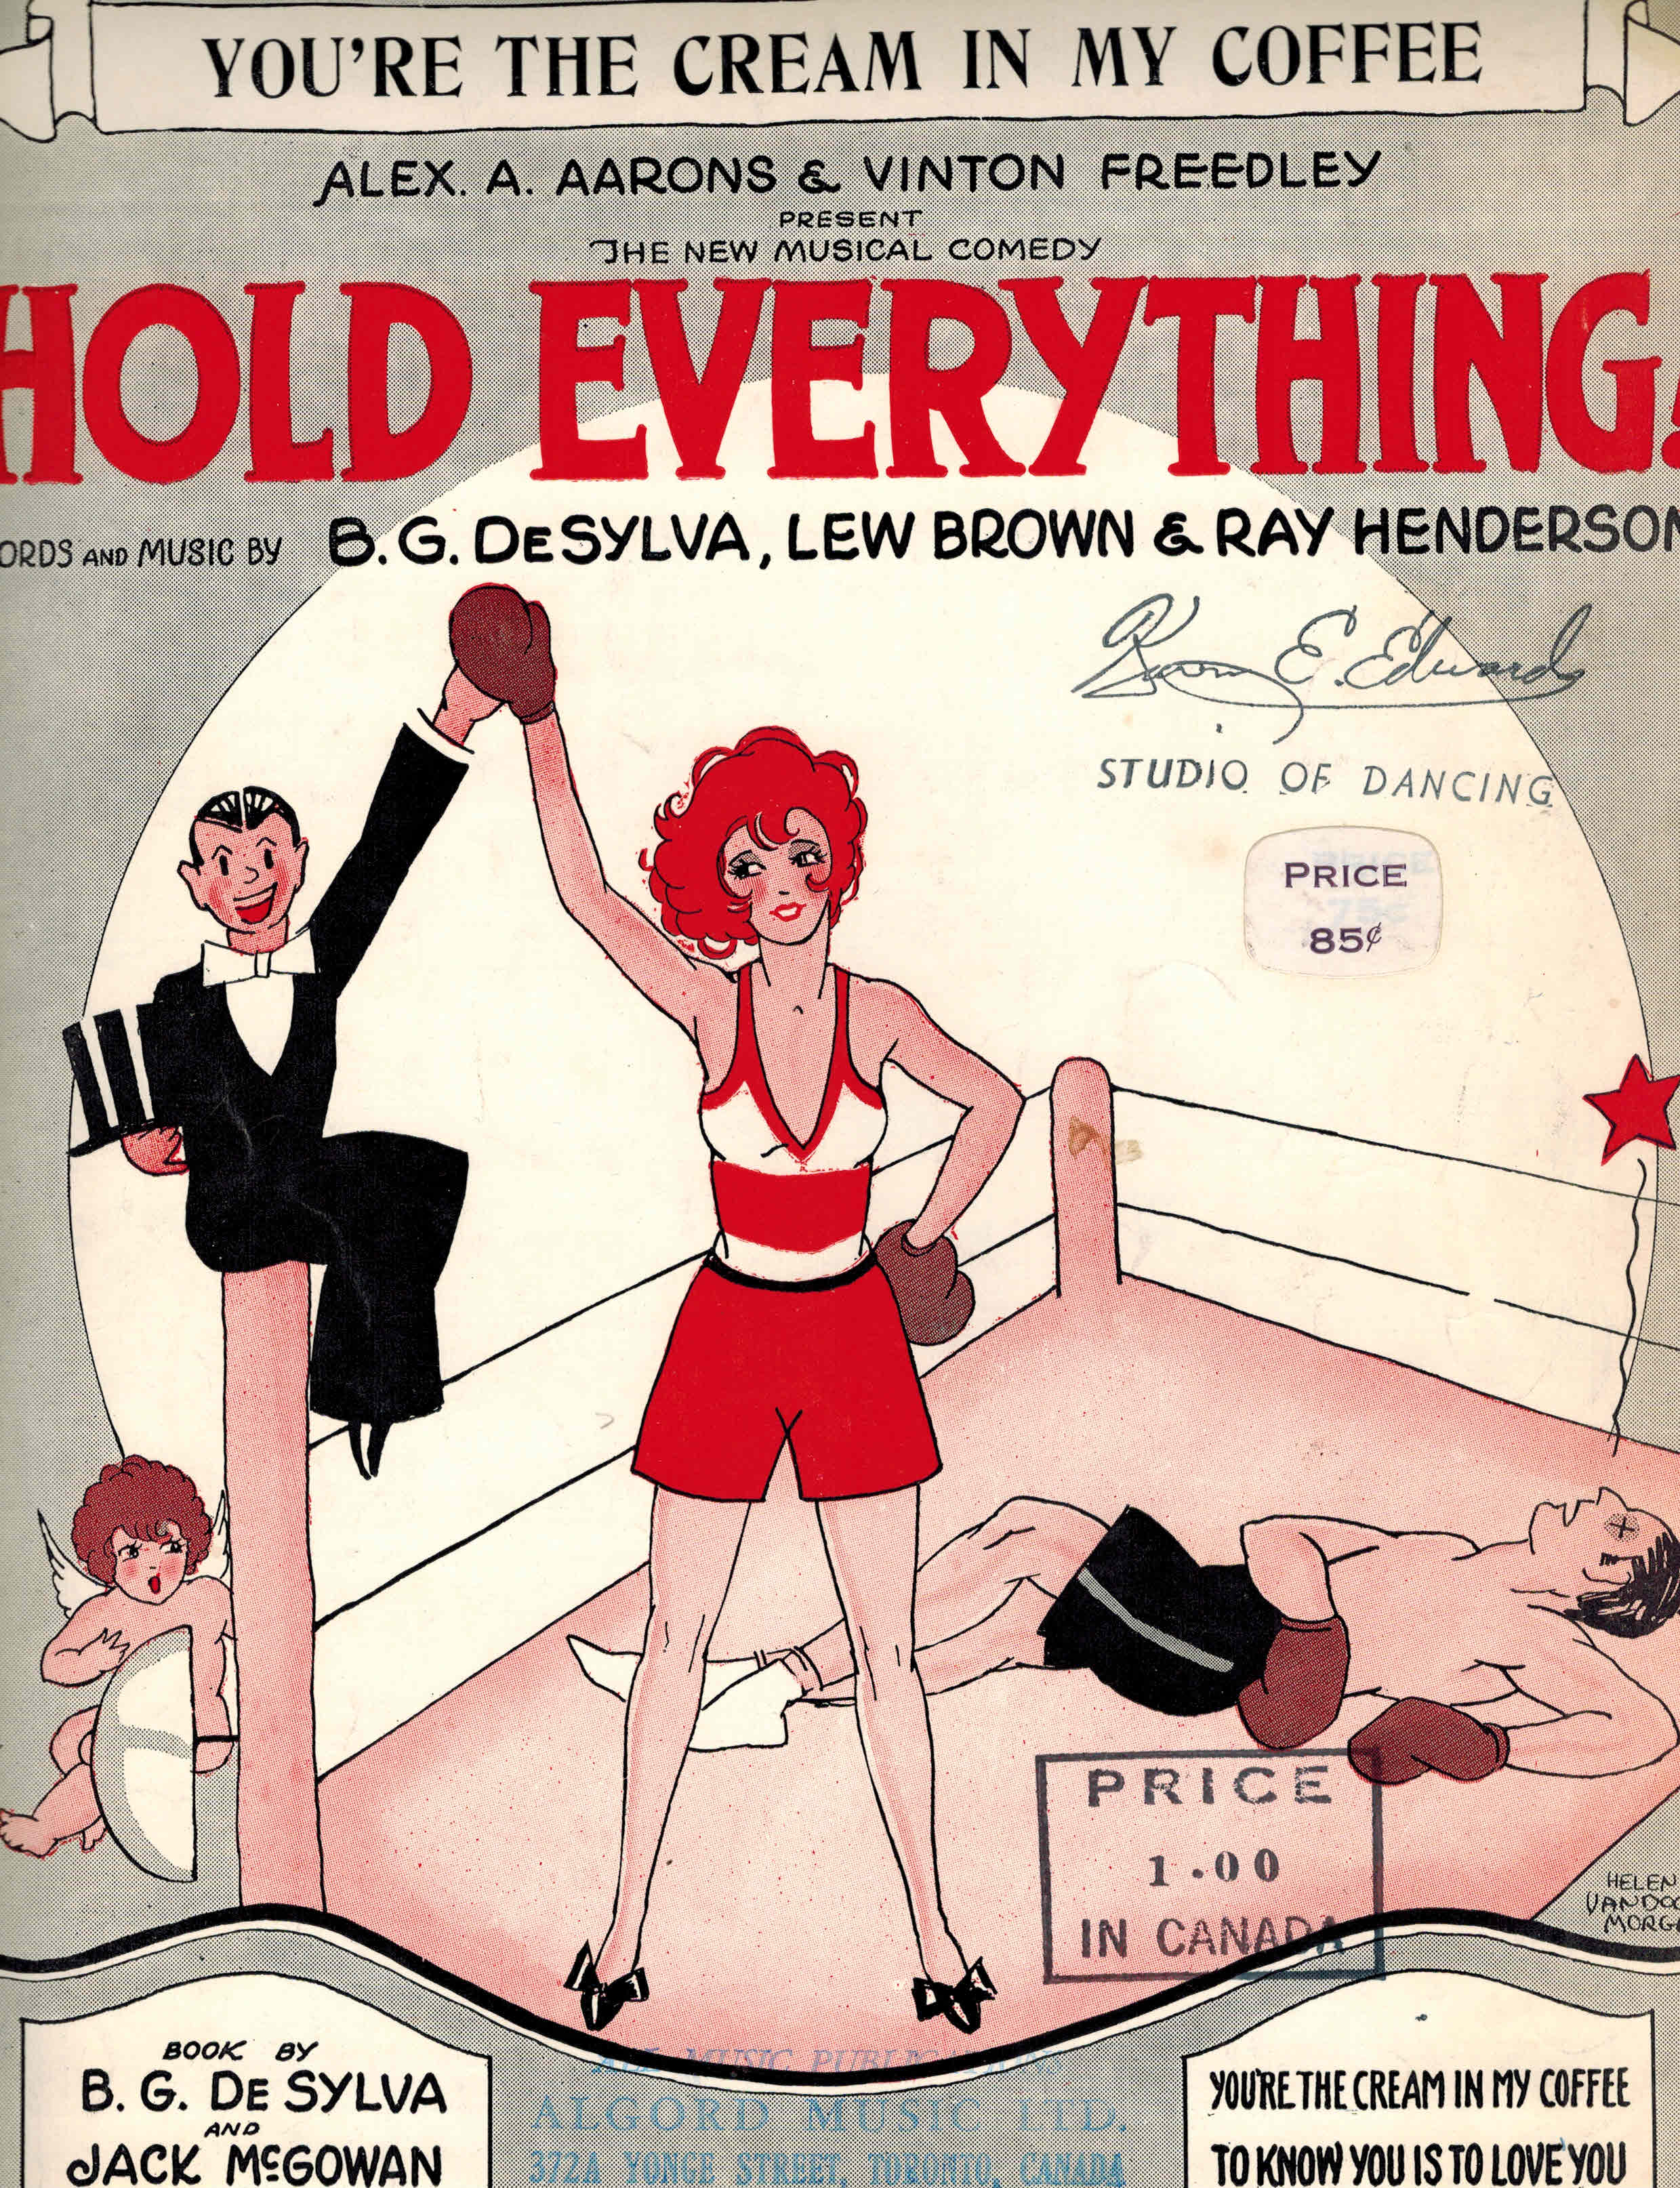 Image for You're the Cream in My Coffee - Shset Msuci from Hold Everything - Boxing Cover